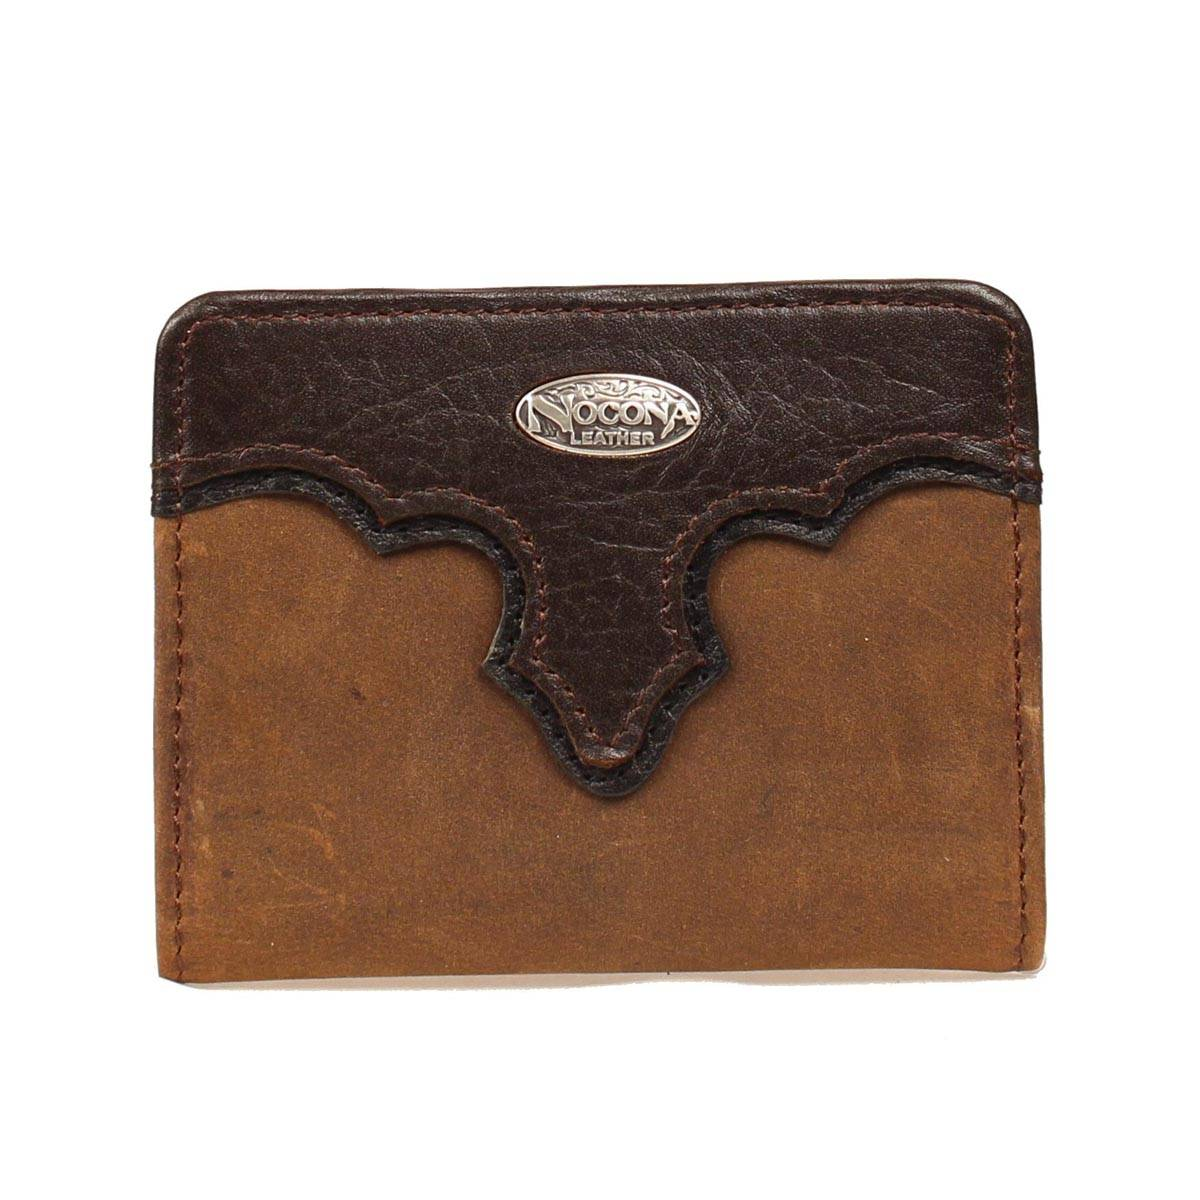 Nocona Bi-fold Distressed Overlay Wallet with Logo Concho